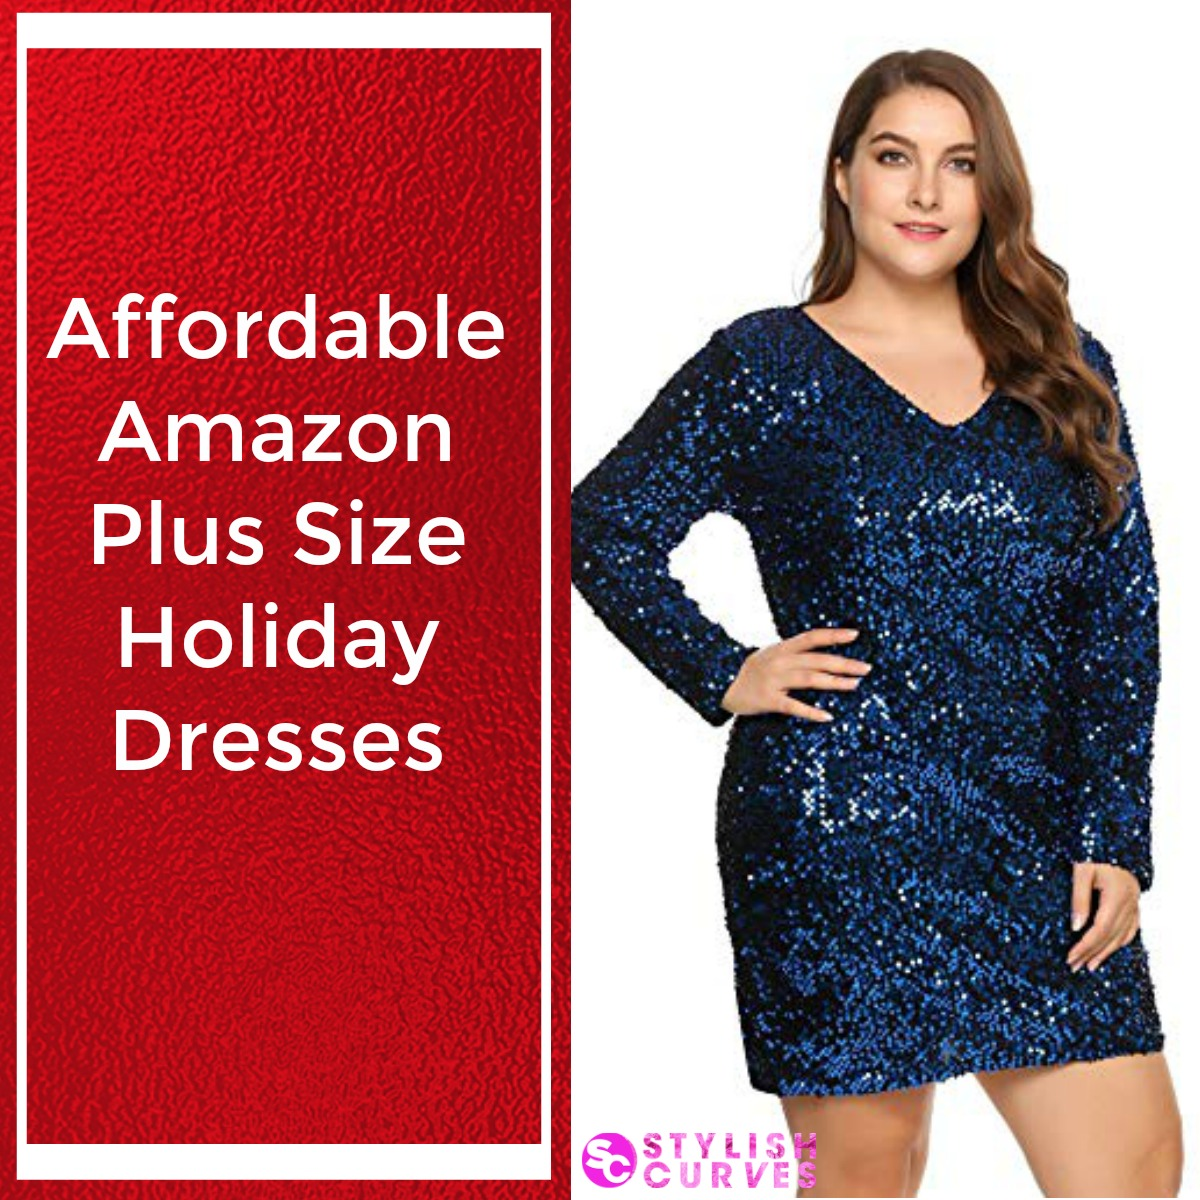 Cheap Plus Size Holiday Dresses On Amazon | Stylish Curves